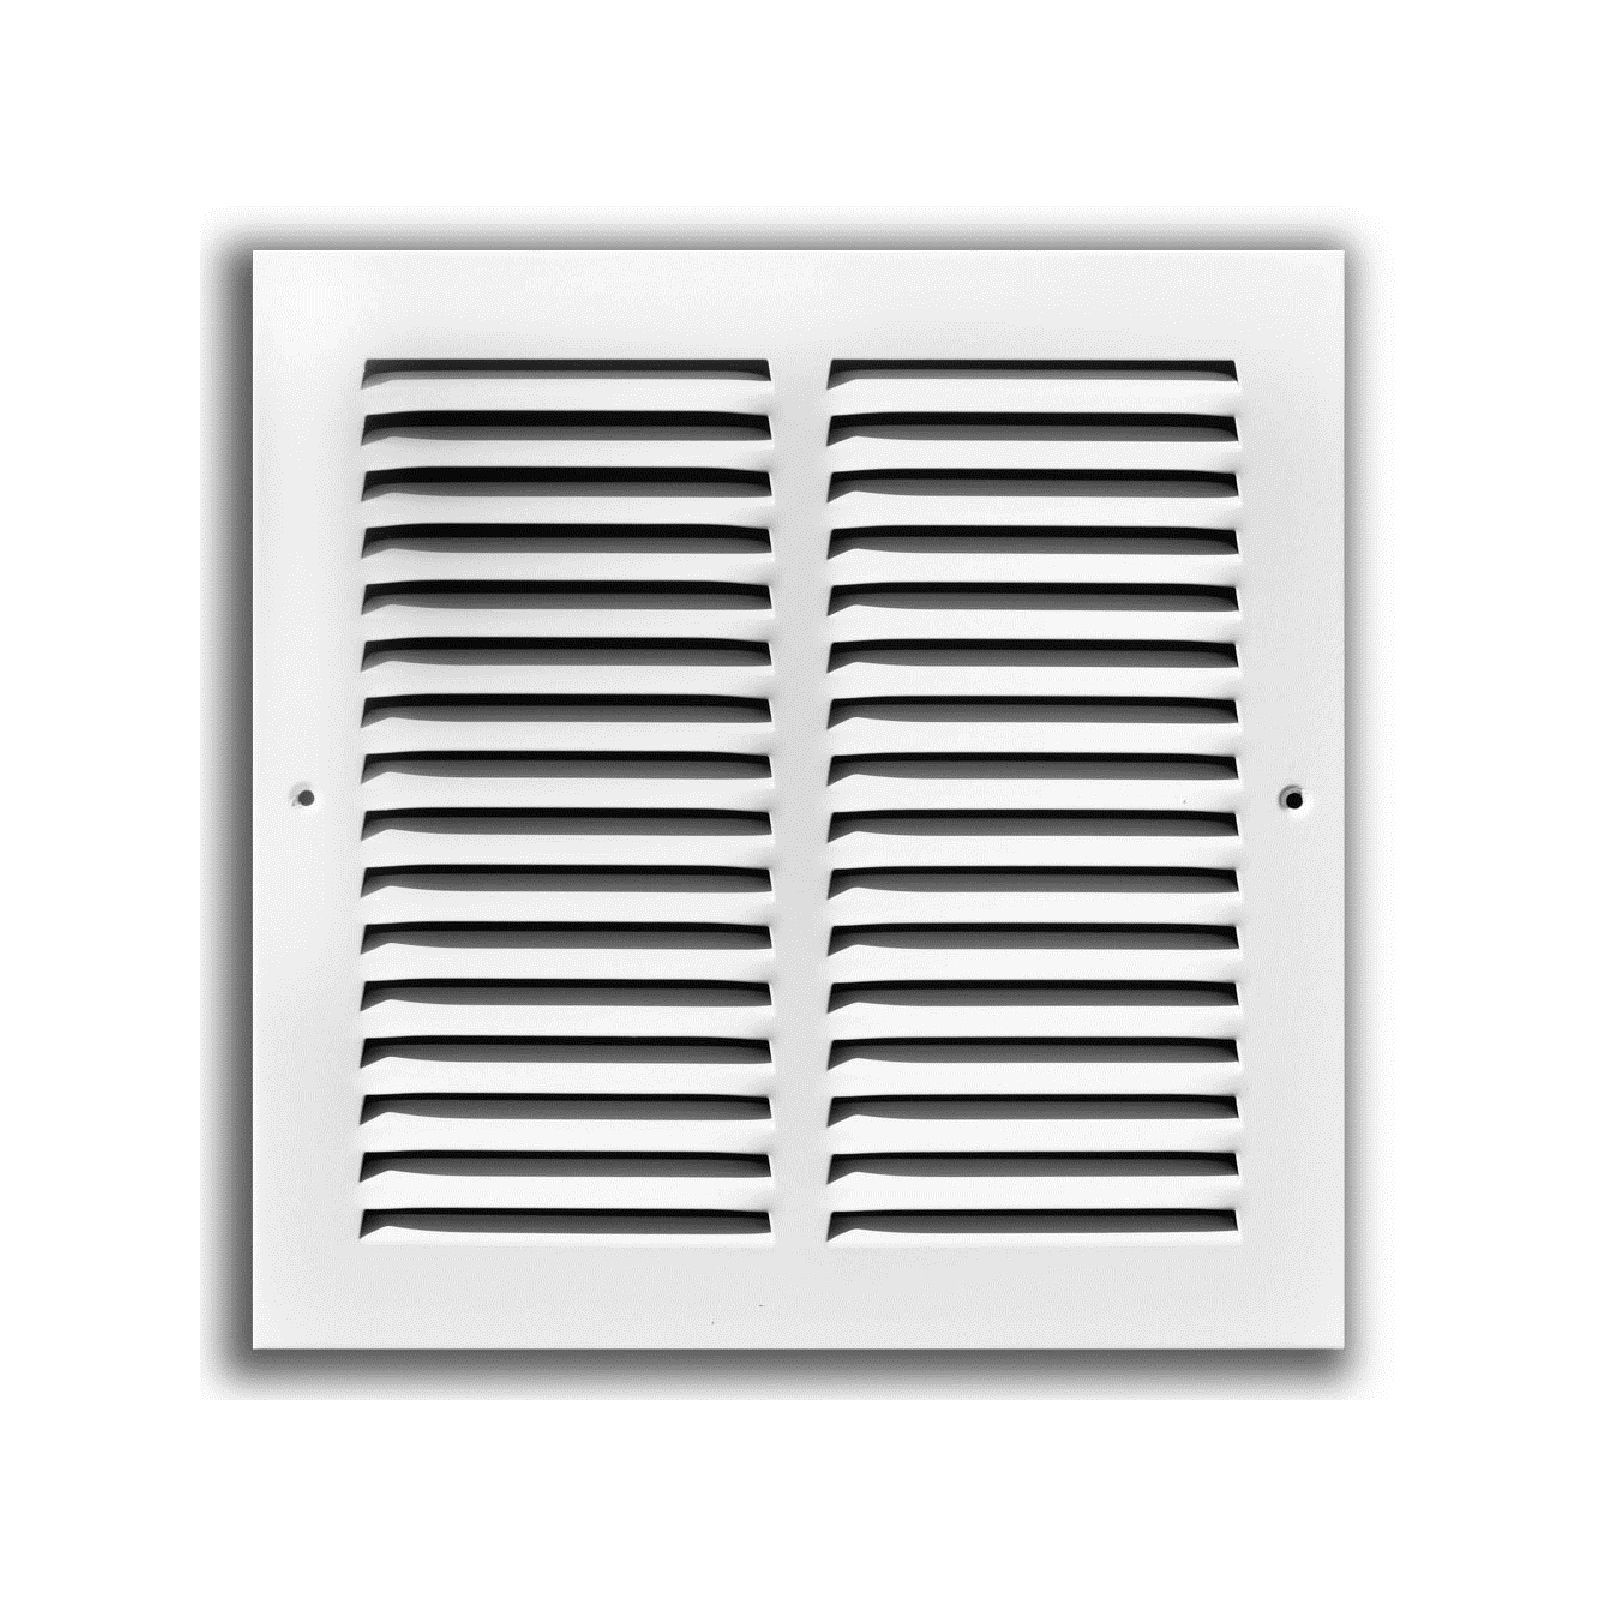 "TRUaire 170 24X10 - Steel Return Air Grille - 1/2"" Spaced Fin, White, 24"" X 10"""